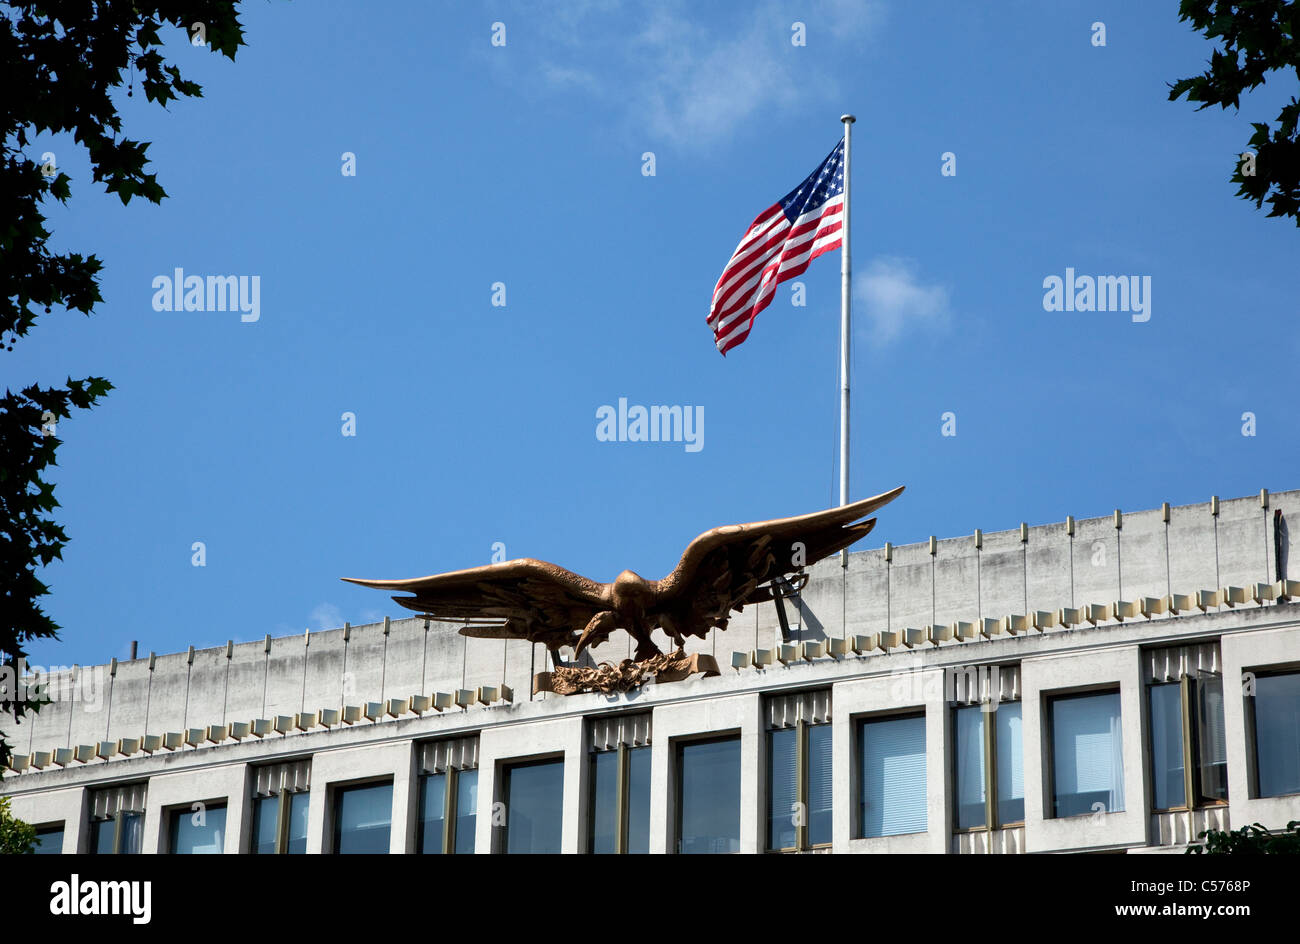 United States of America Embassy, Grosvenor Square, London - Stock Image